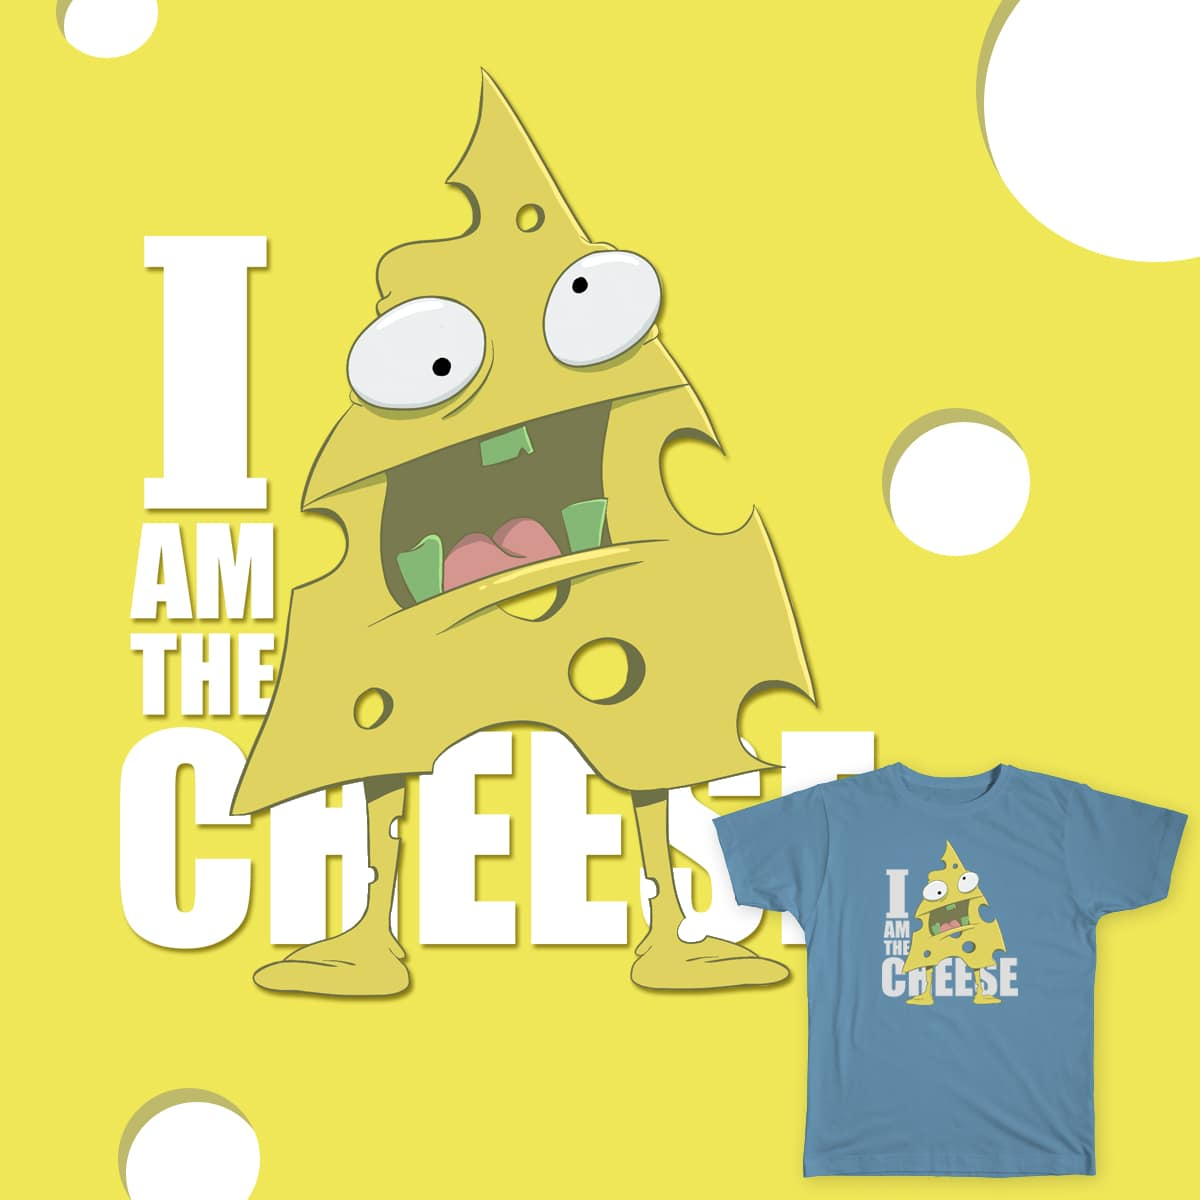 I AM THE CHEESE by Jcritellijr on Threadless